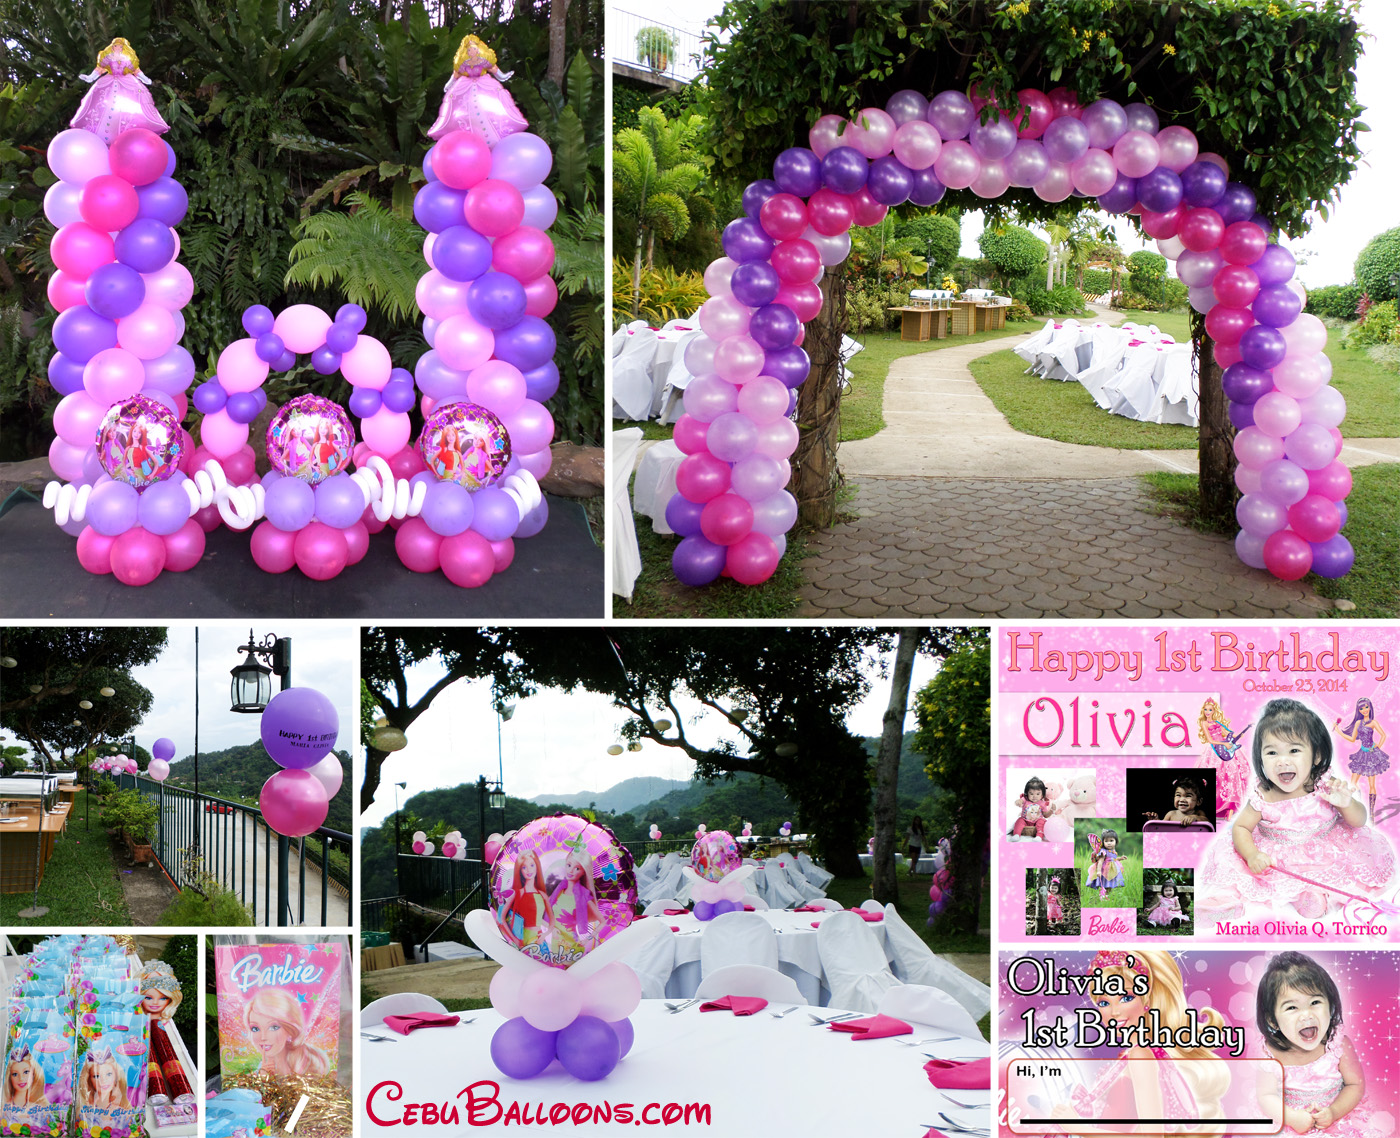 Barbie Theme Balloon Decoration & Party Supplies at Chateau de Busay